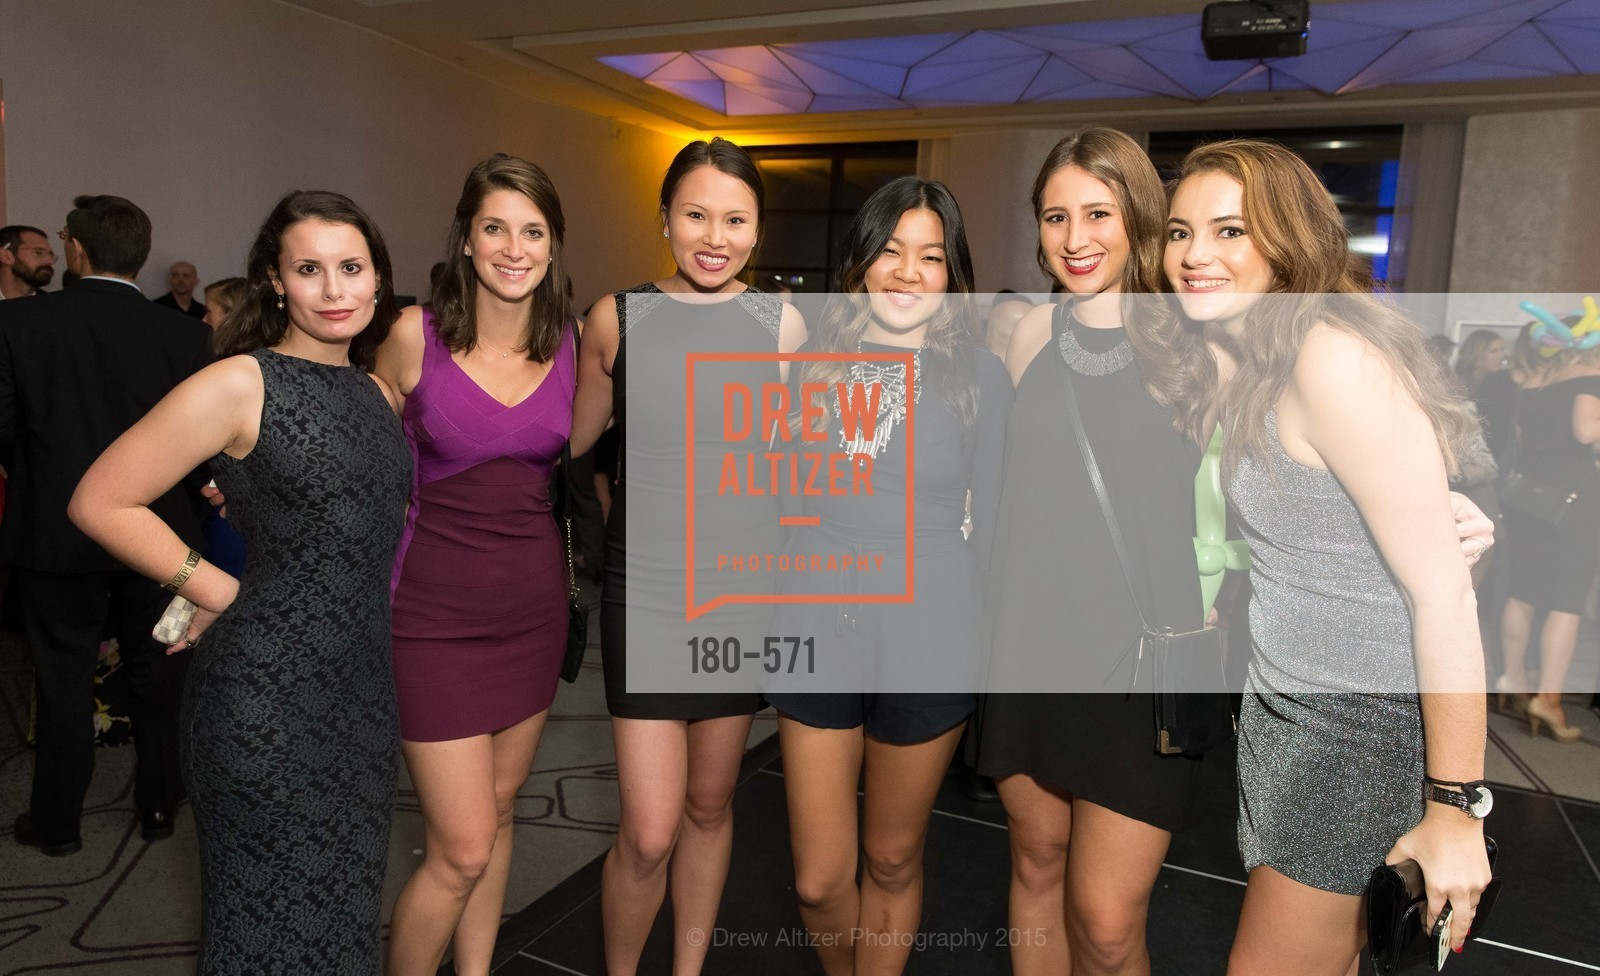 Kira Richardson, Emma Stamp, Meg Mansfield, Katherine Zhang, Amanda Sterman, Allie Zimnoch, The 10th Annual San Francisco Social, W Hotel. 181 3rd St, November 21st, 2015,Drew Altizer, Drew Altizer Photography, full-service agency, private events, San Francisco photographer, photographer california